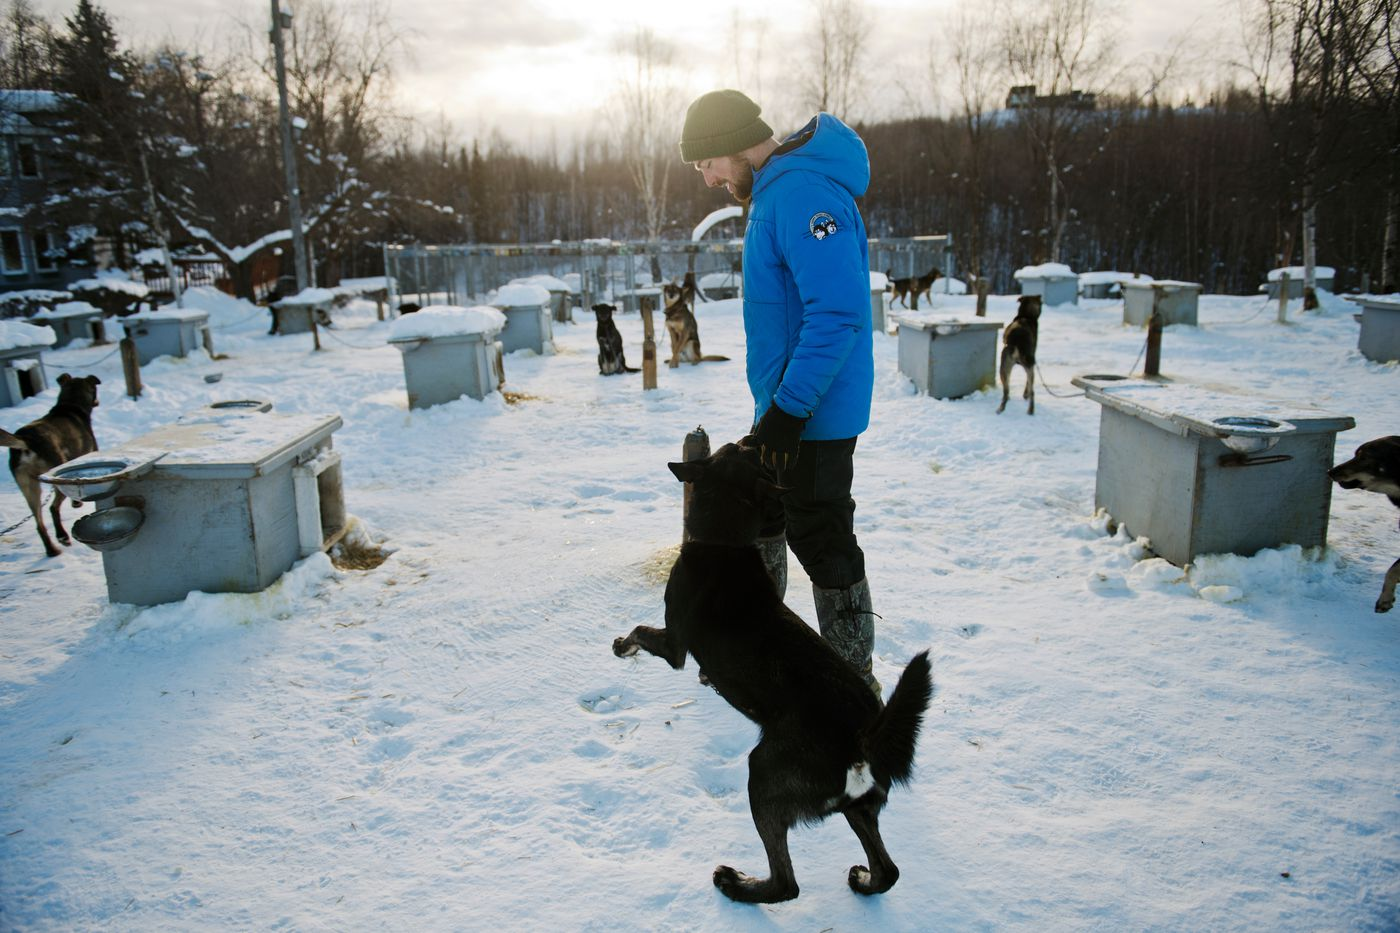 Tim Pappas is an Iditarod veteran and an apprentice for Martin Buser at Buser's Big Lake kennel. This year, Buser offered Pappas the chance to run the kennel's fastest dogs in the Iditarod. Photographed on February 25, 2020. (Marc Lester / ADN)